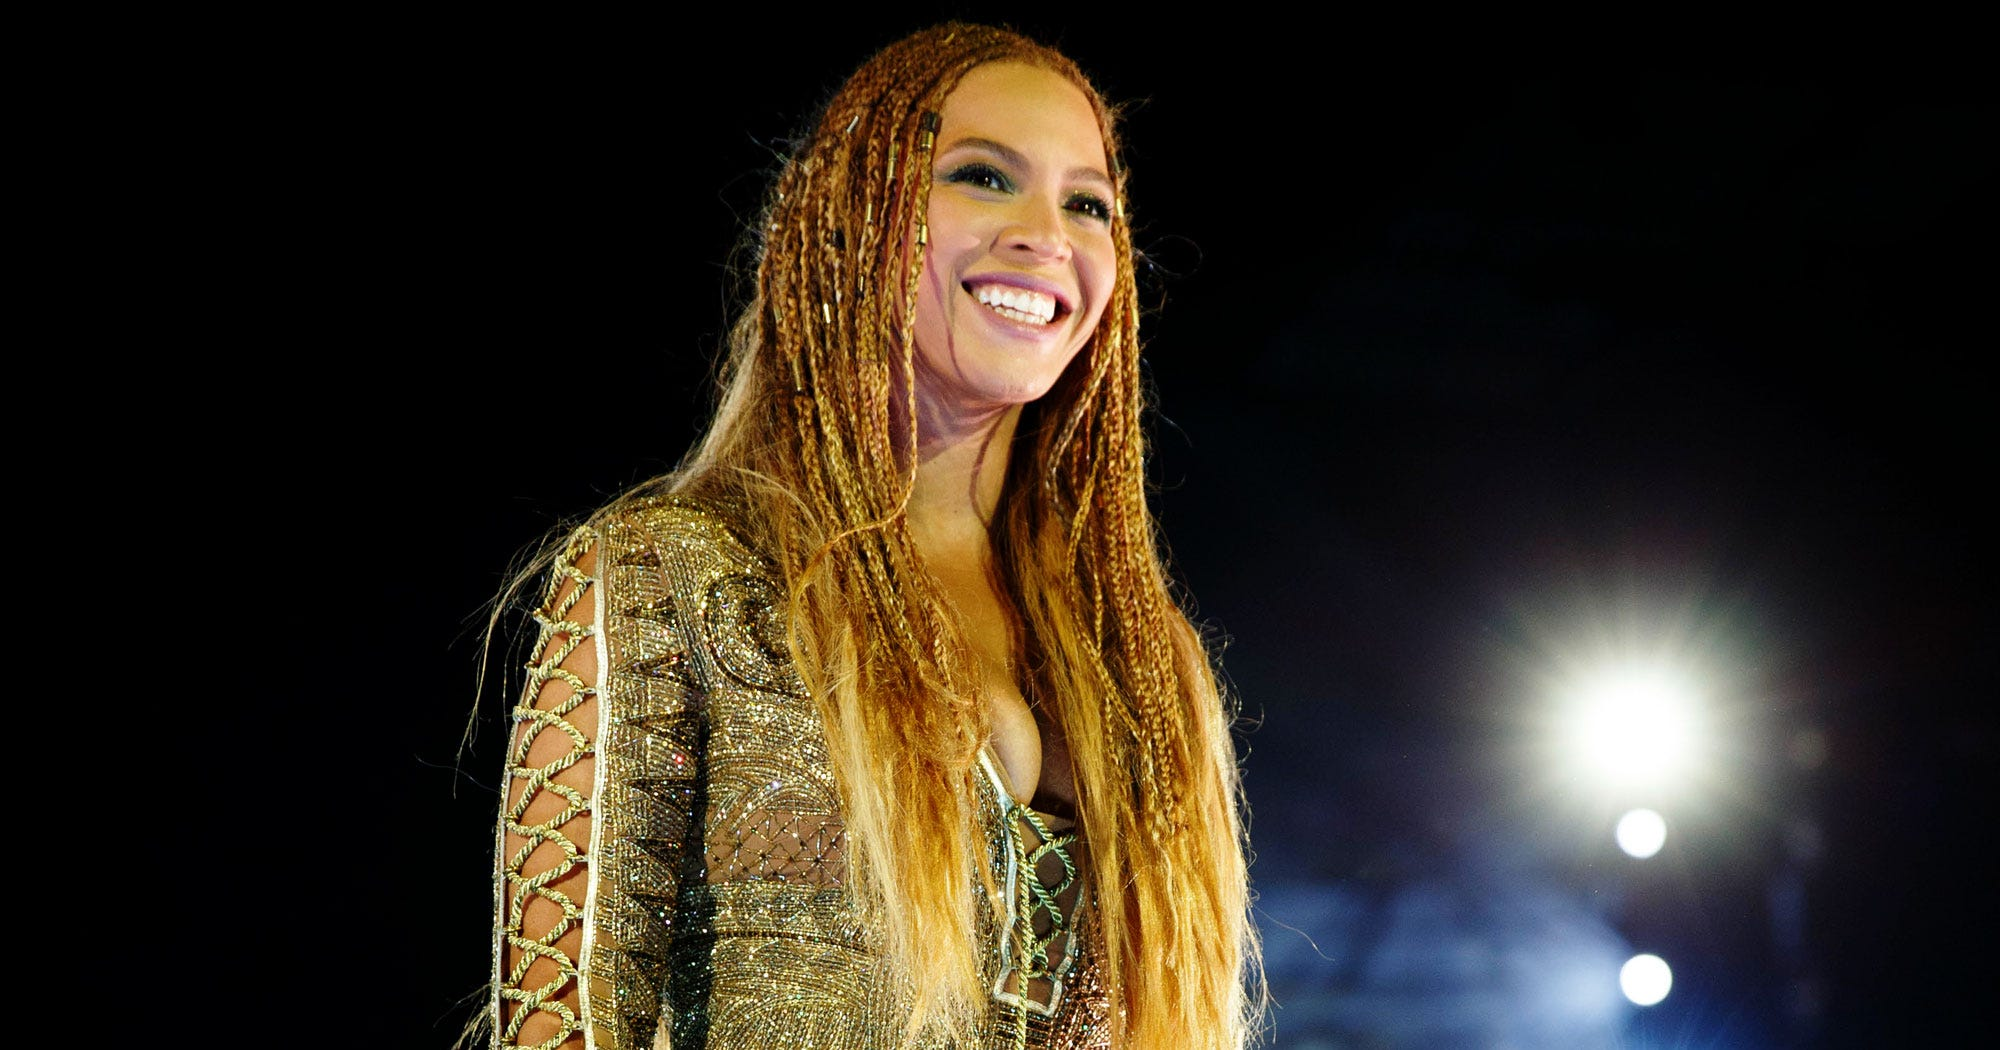 Beyonce Formation Tour Hairstyles - Neal Farinah